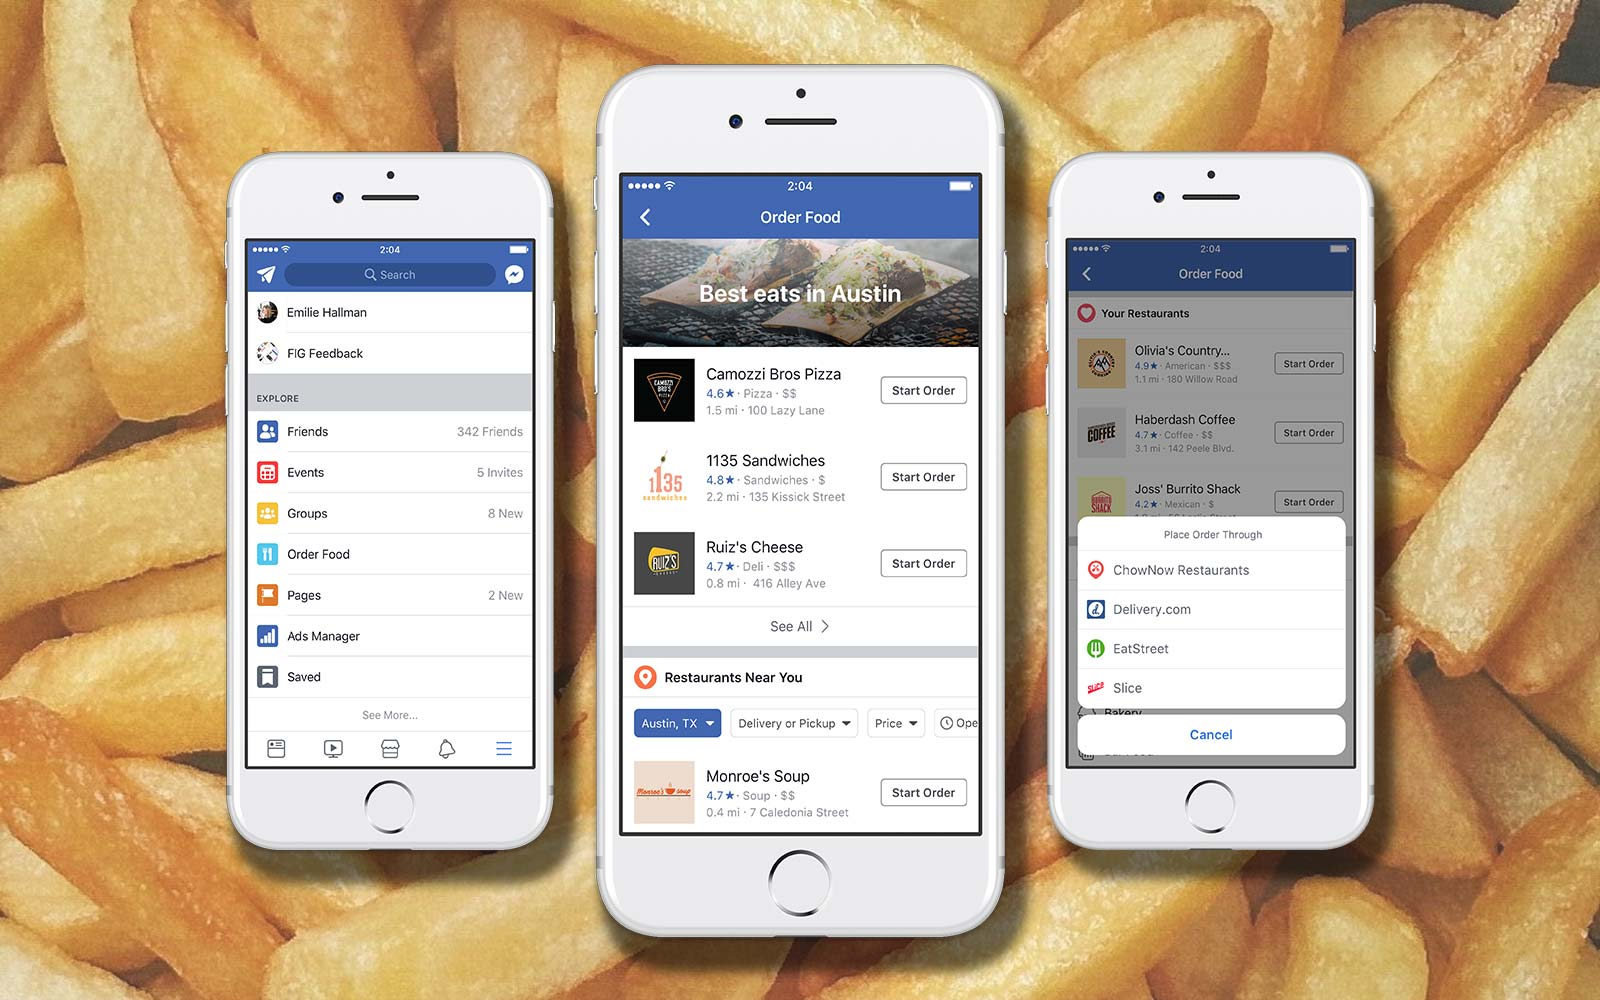 Facebook now lets you order food through the app